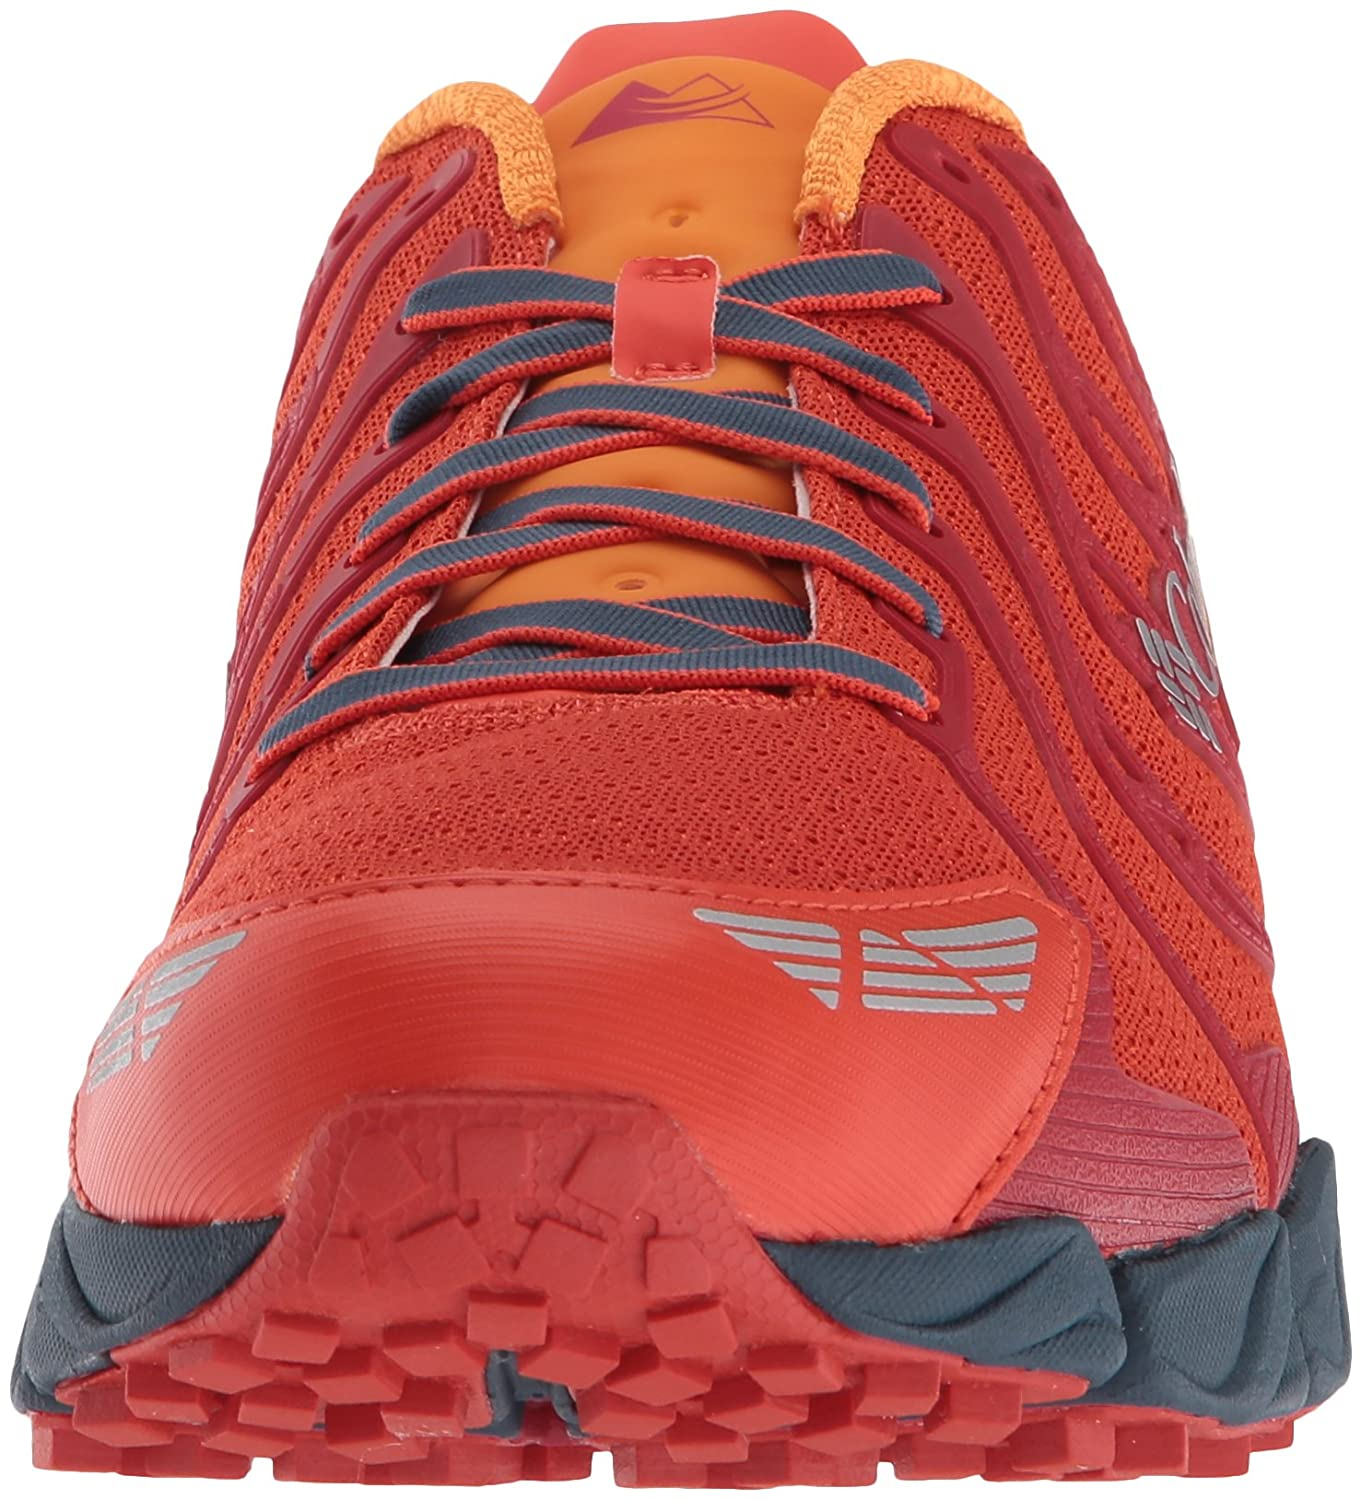 Columbia Montrail Men s Fluidflex F.K.T. II Trail Running Shoe